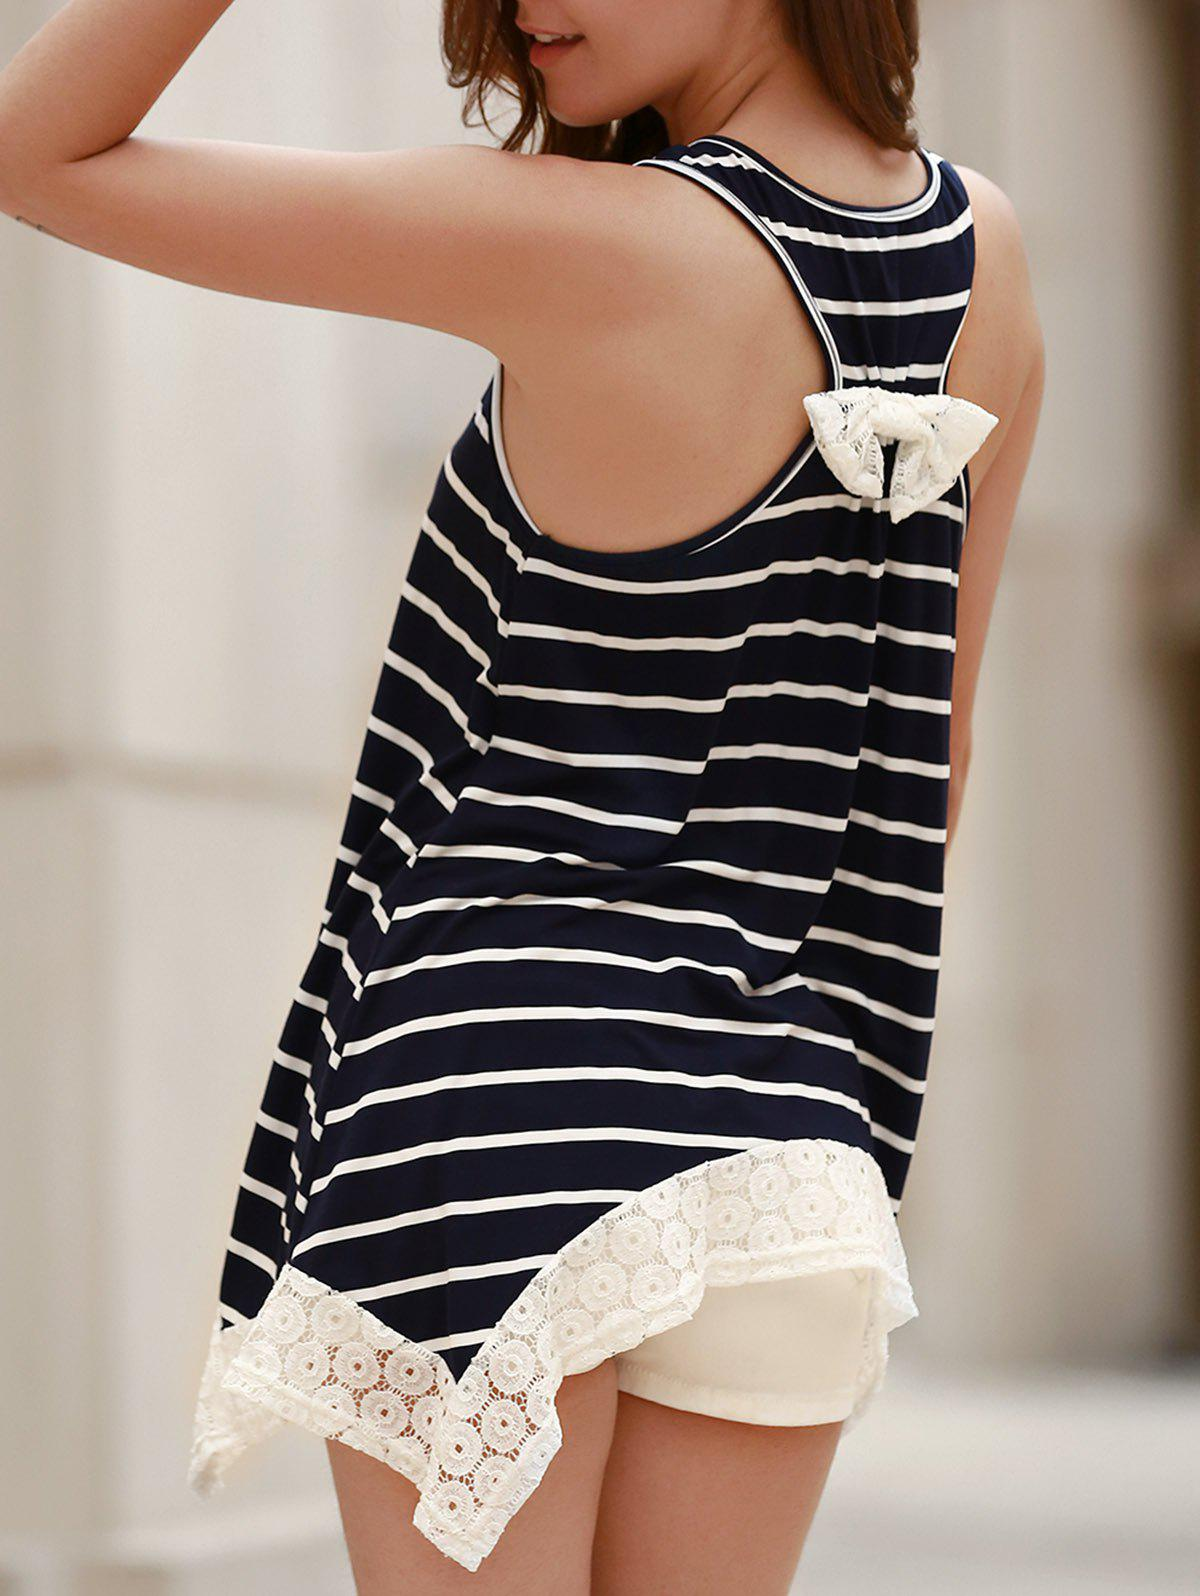 Chic Scoop Neck Sleeveless Bowknot Design Striped Women's Tank Top - CADETBLUE M